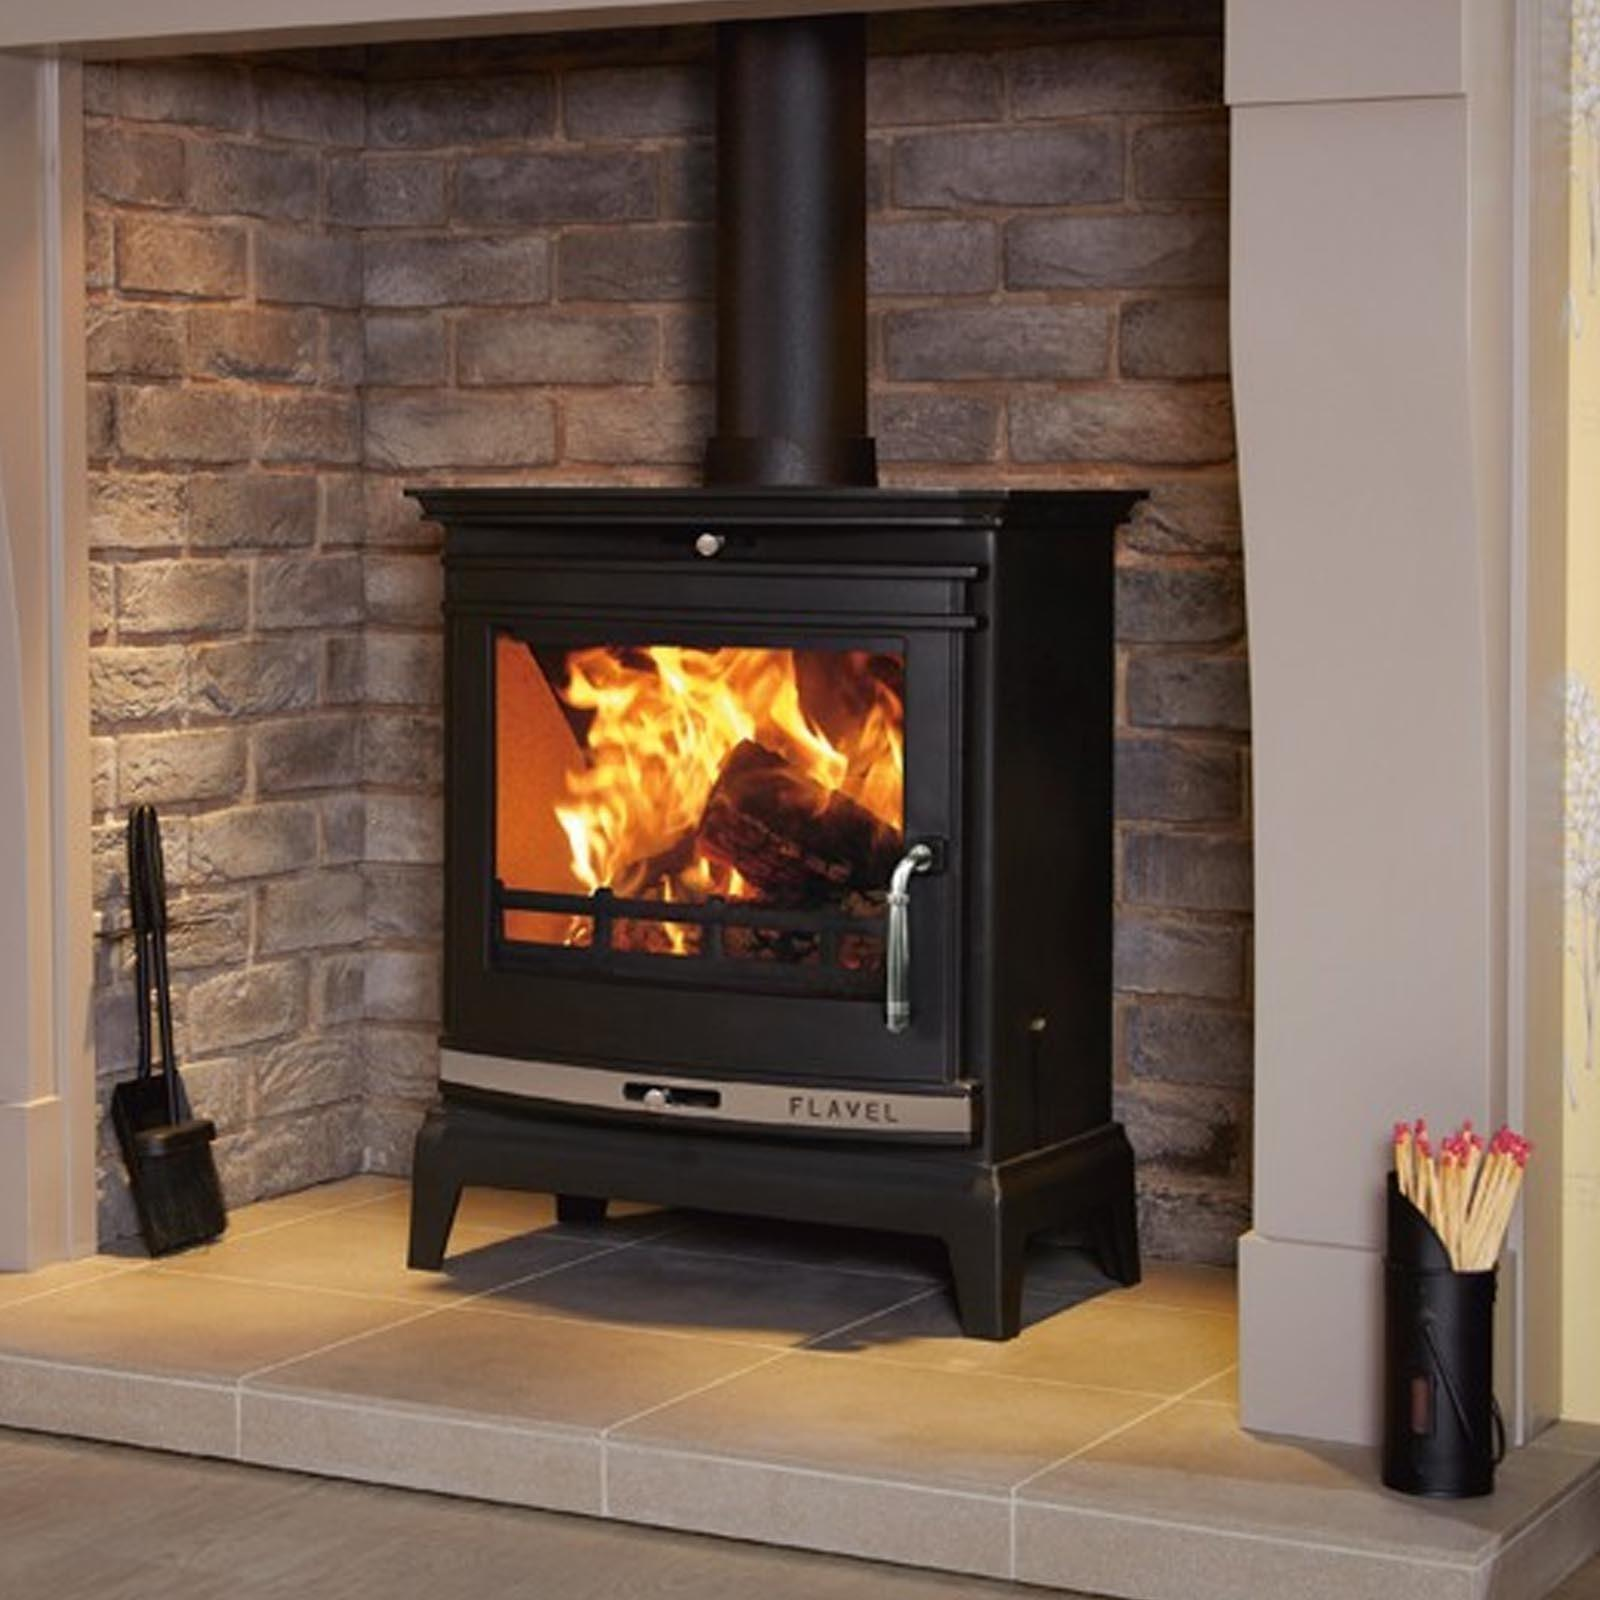 Cant Beaten Price Flavel Central Heating Stove